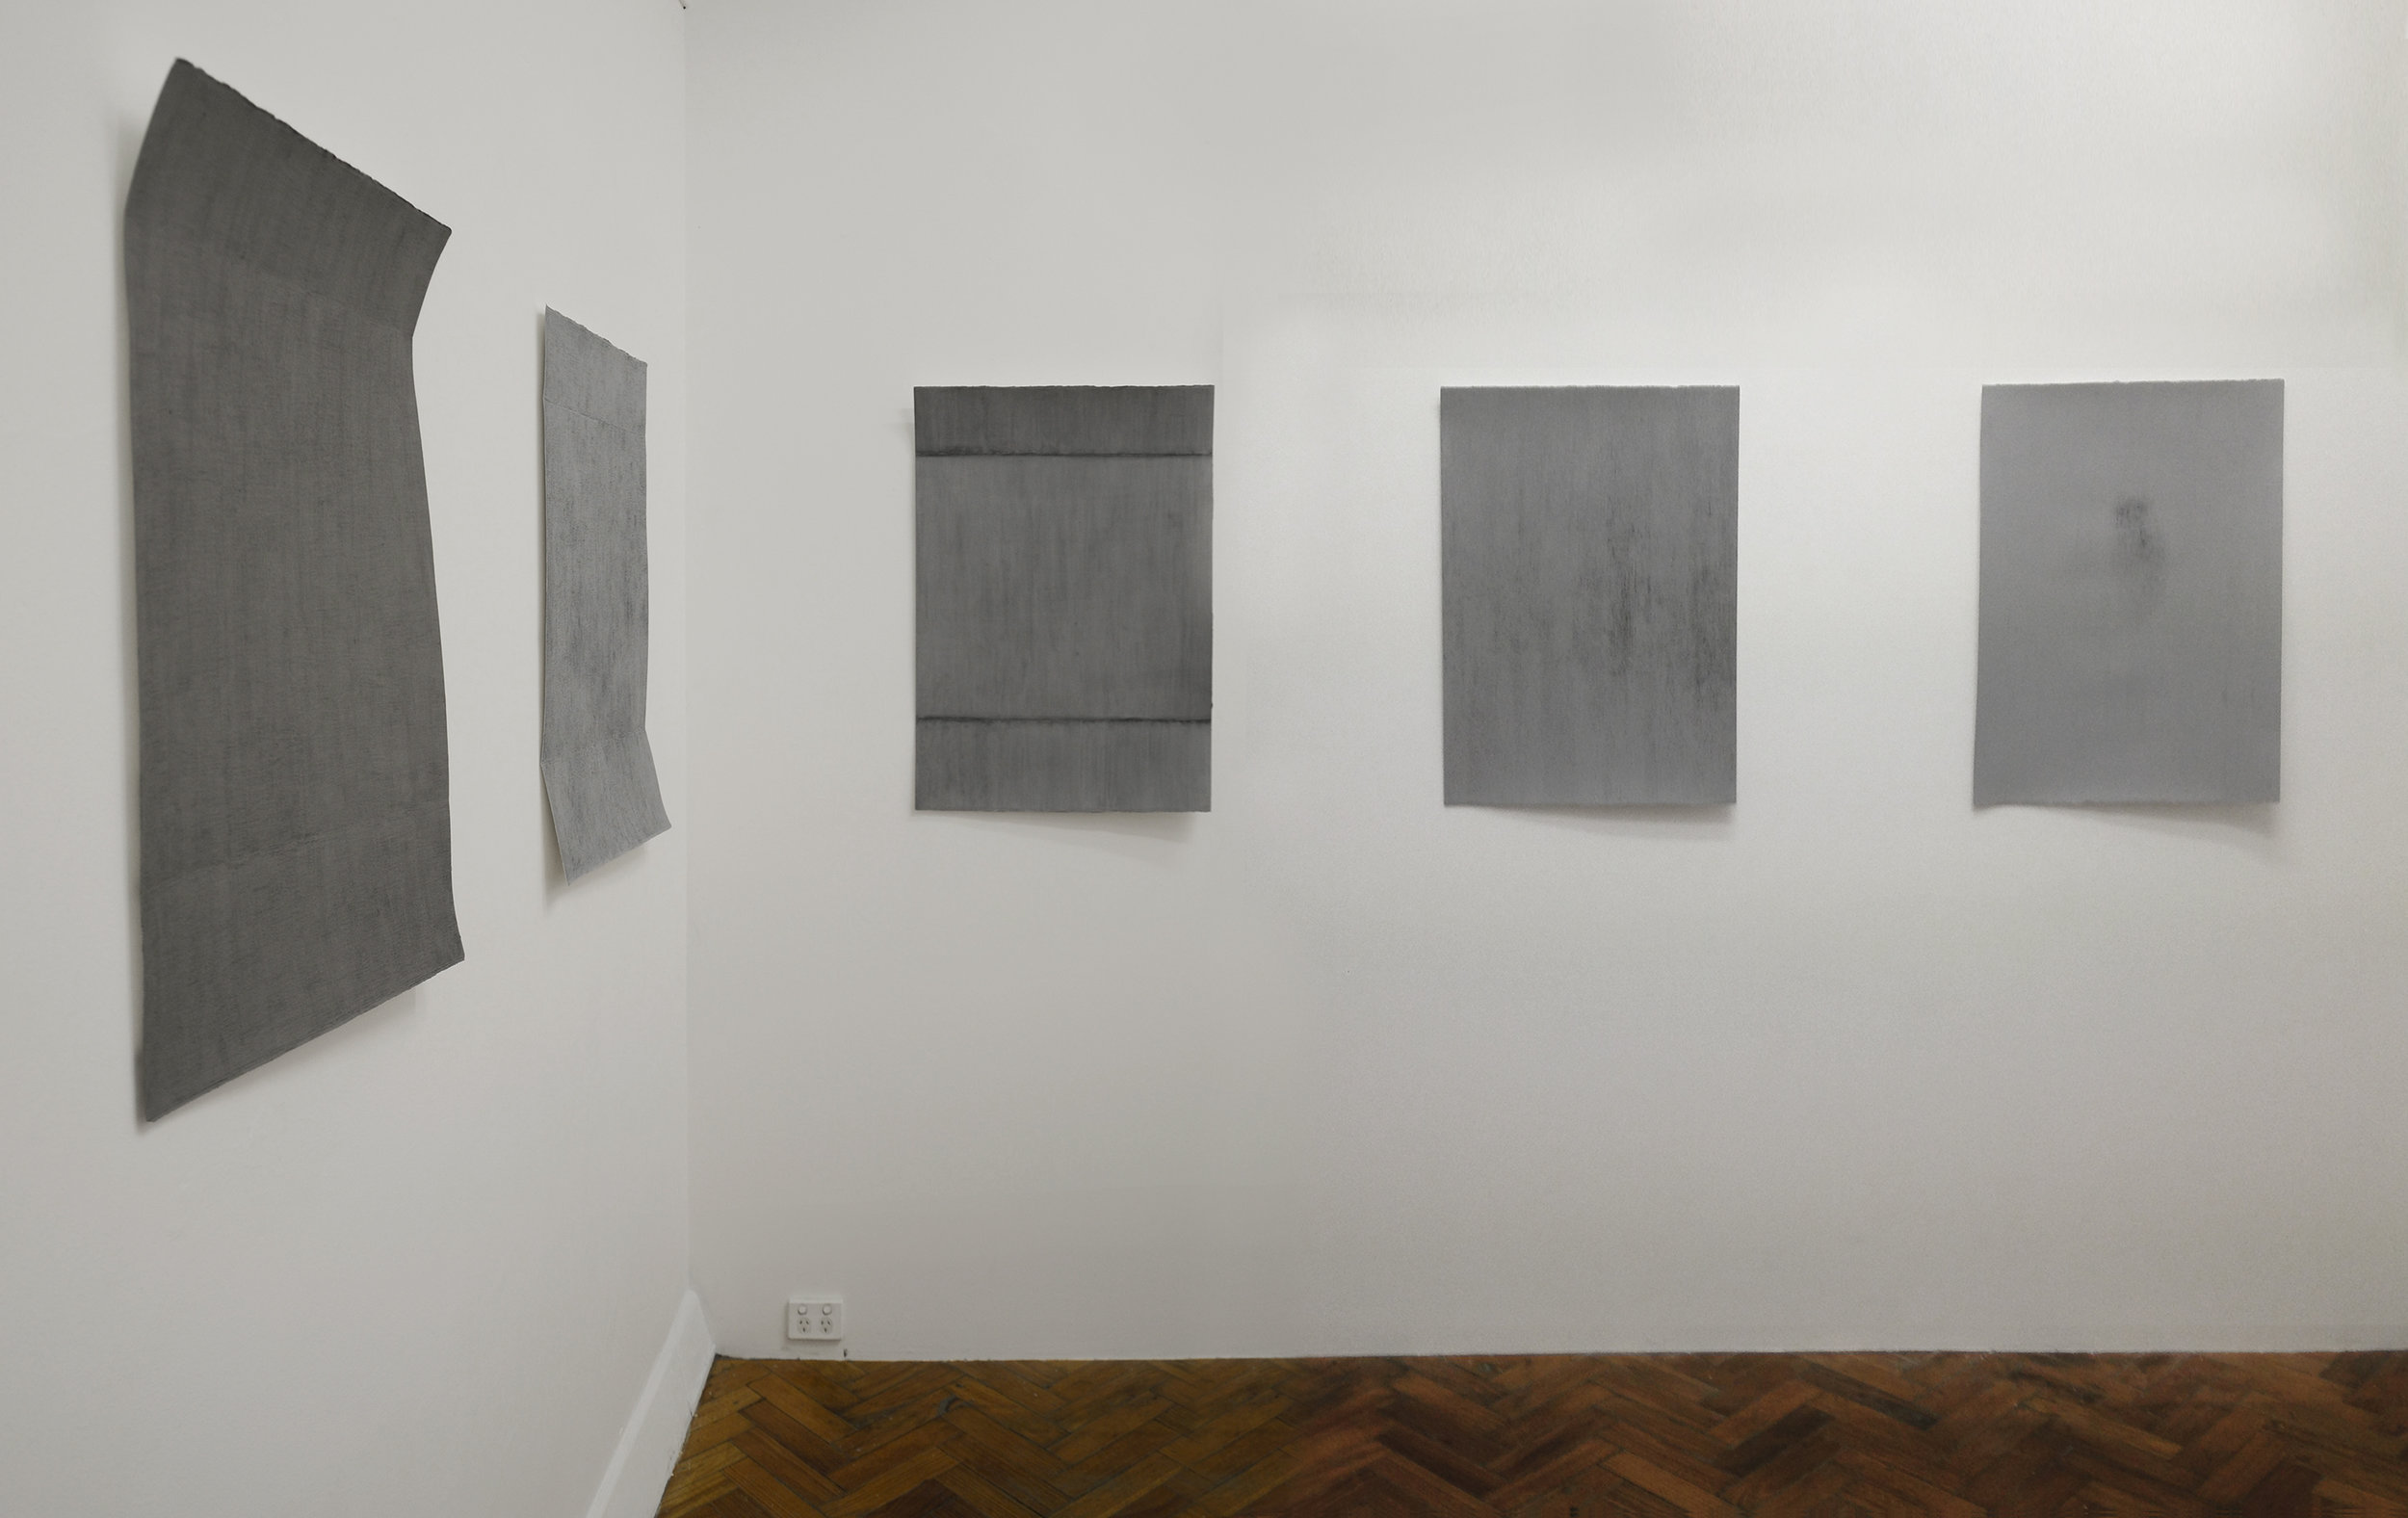 Object drawings   Acrylic, aluminium pigment, graphite on folded paper. Each 80 x 50cm. Installation view, Sarah Scout Presents, Melbourne. 2017.